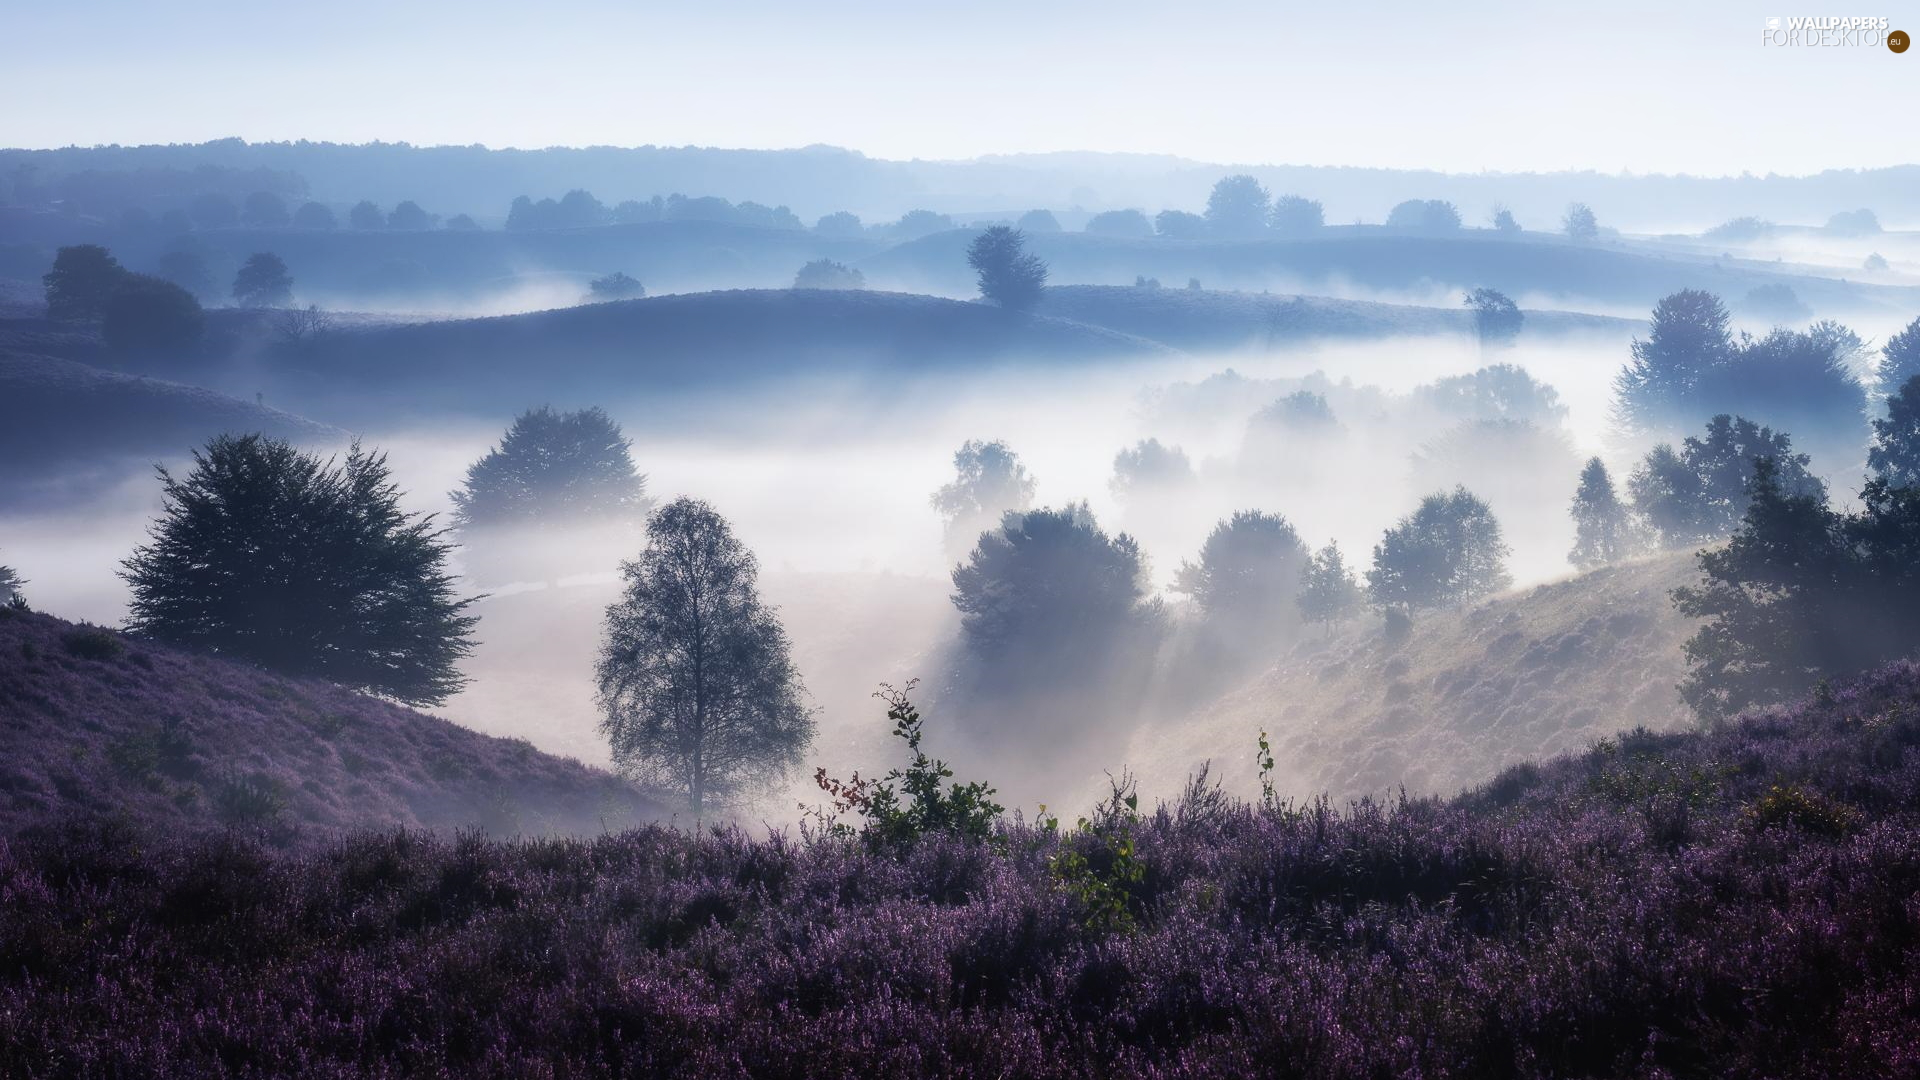 viewes, Fog, heath, trees, The Hills